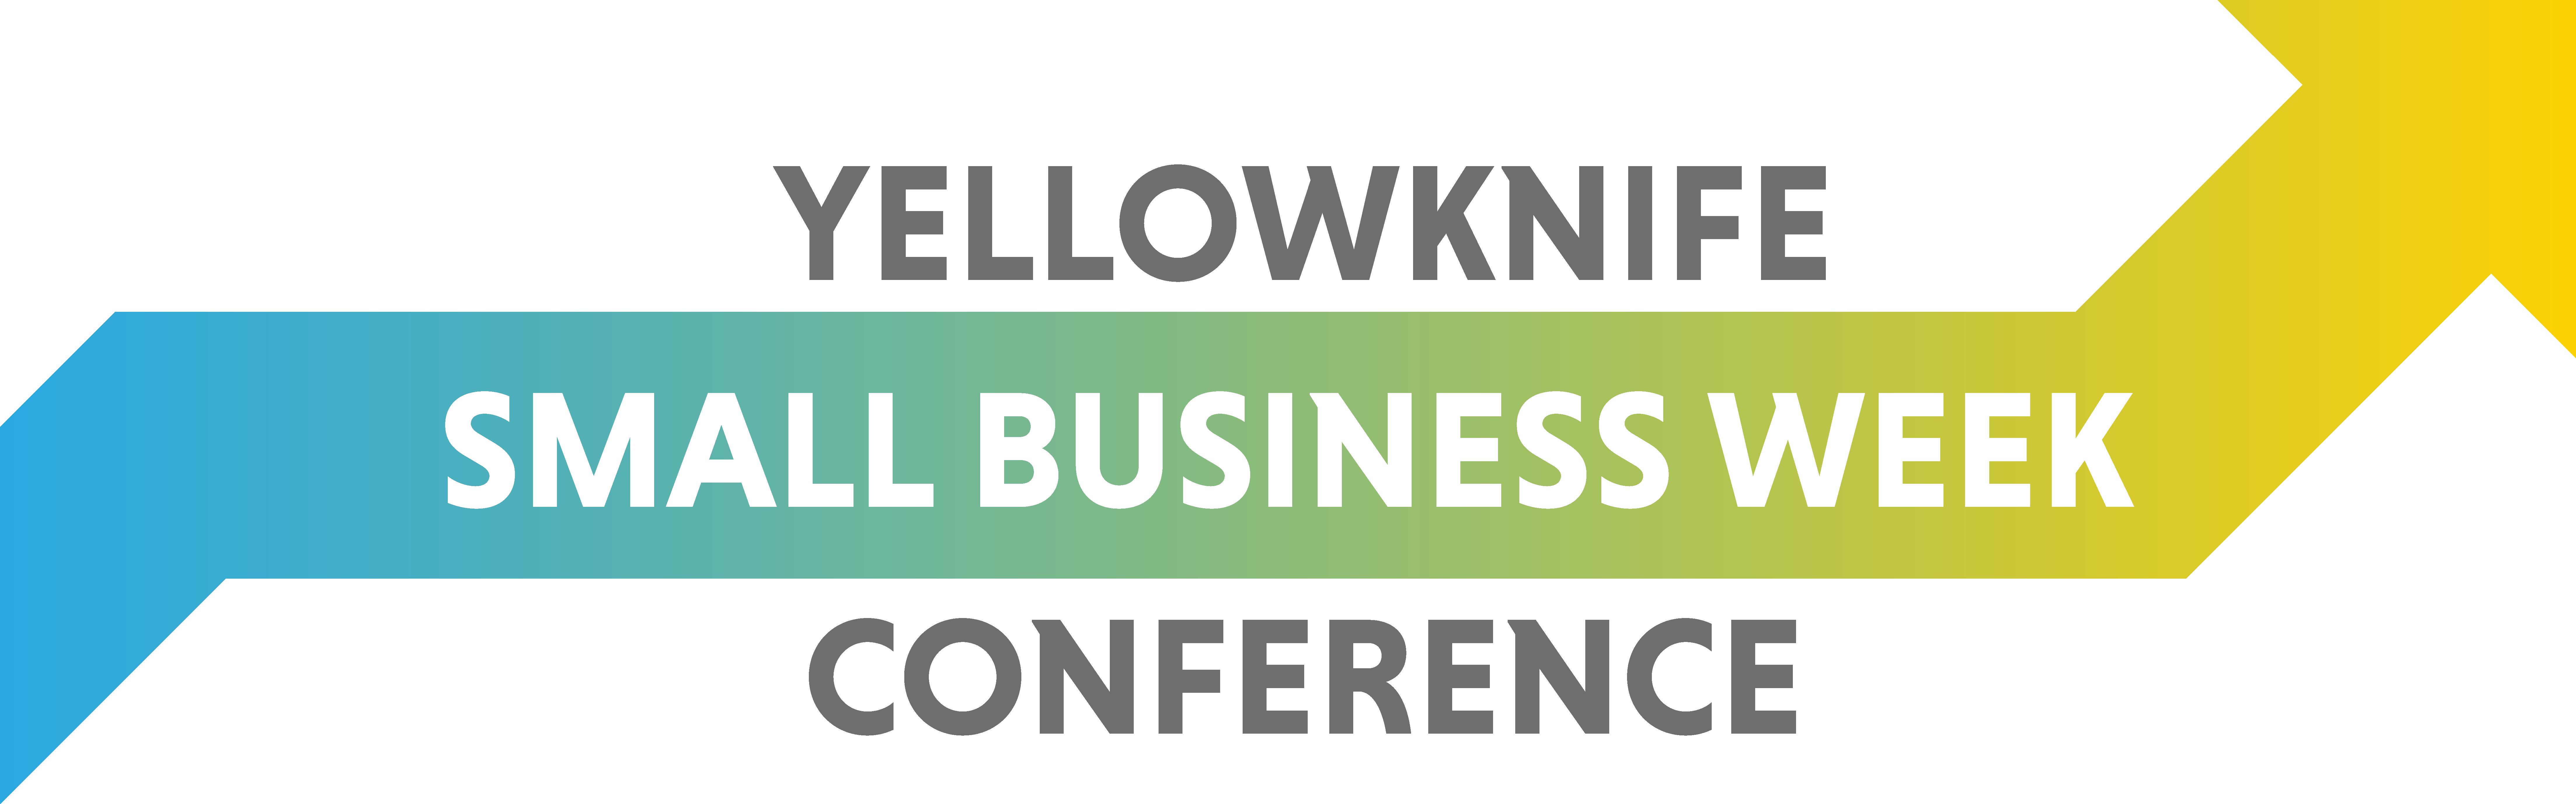 YK-Small-Business-Conference-Logo-02.png